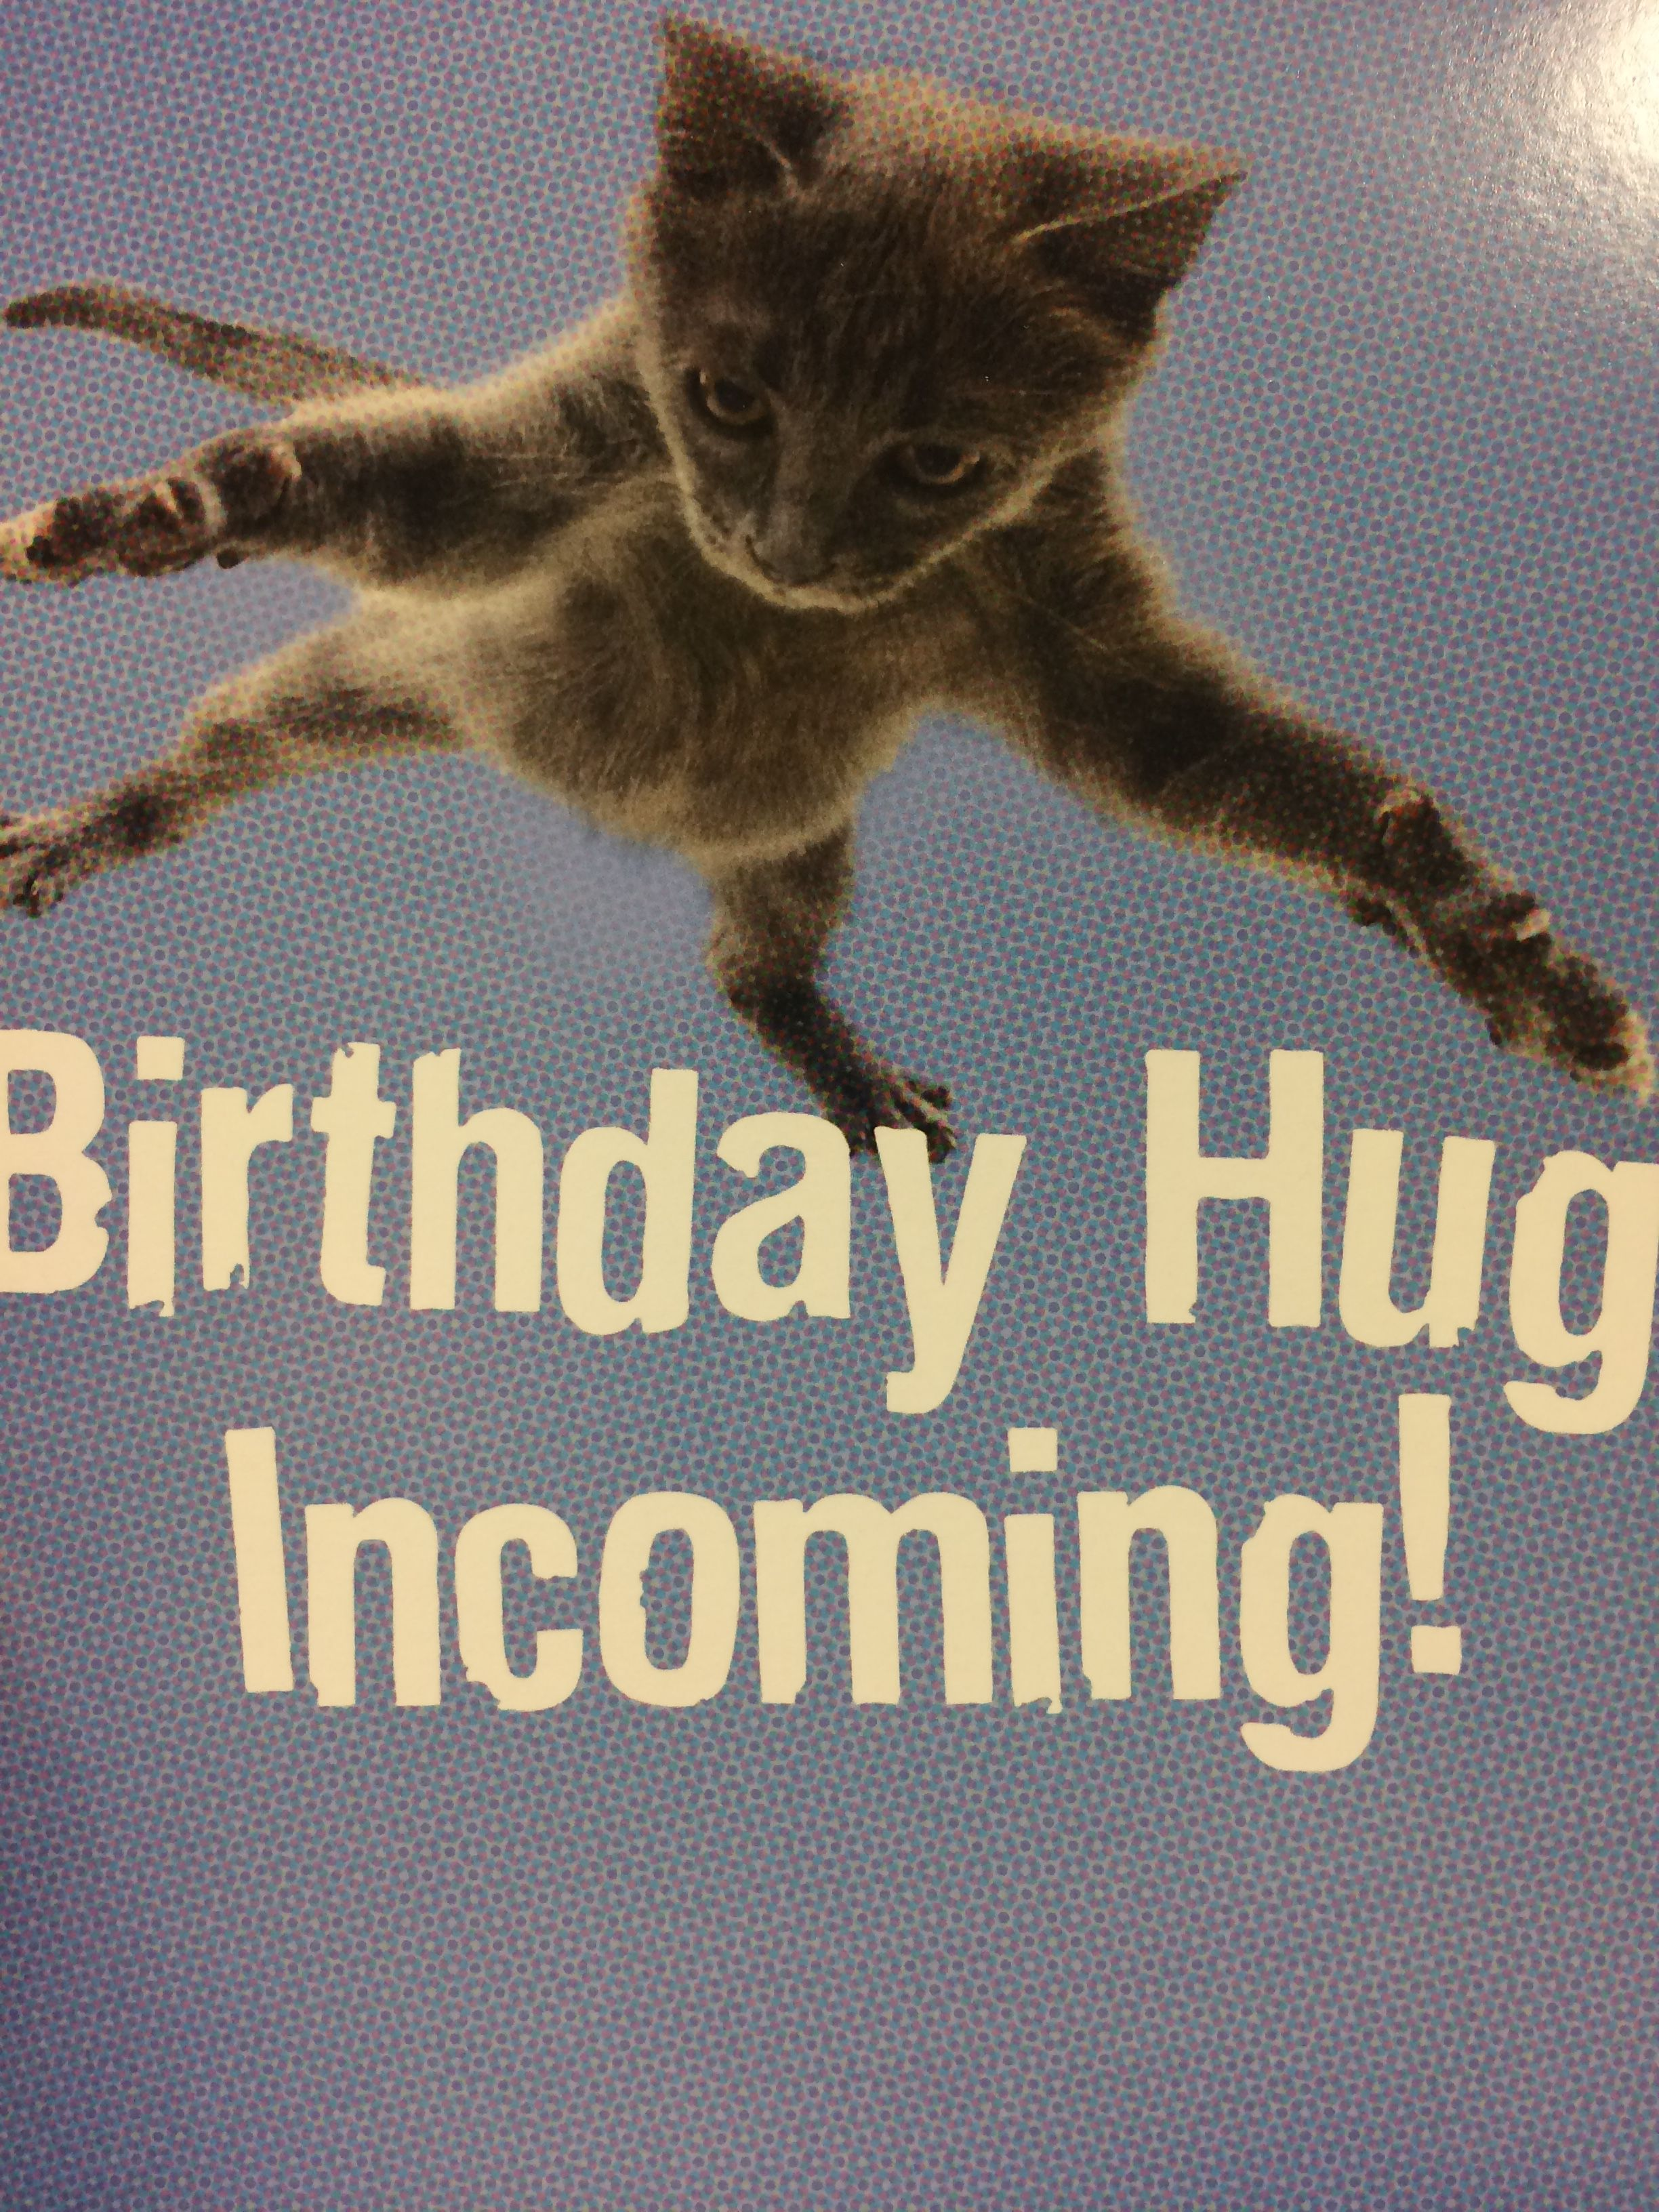 Funny Happy Birthday Cat Meme : Pin by cherie czabala on cat pictures birthdays